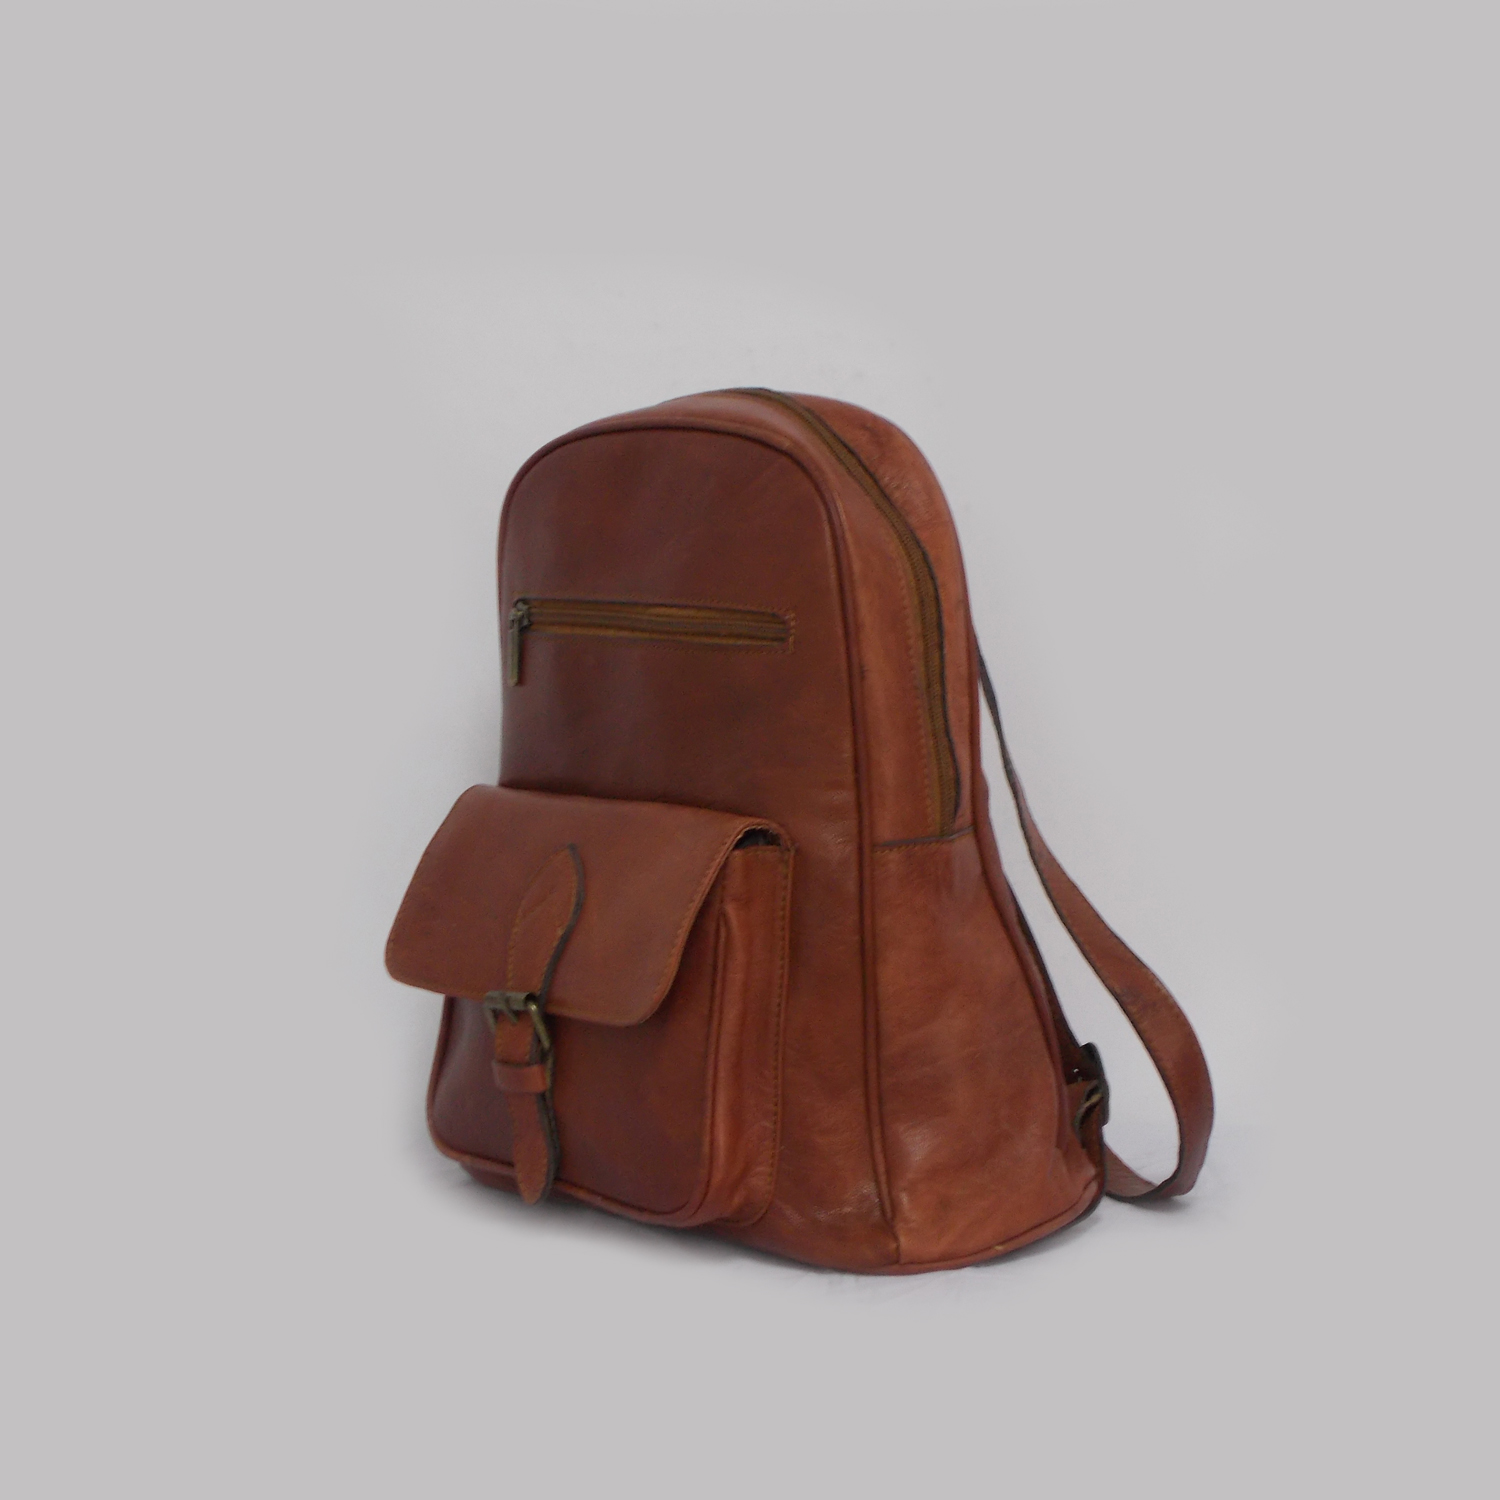 Mochila Backpack Thomassi Collection 2020 Handmade Leather